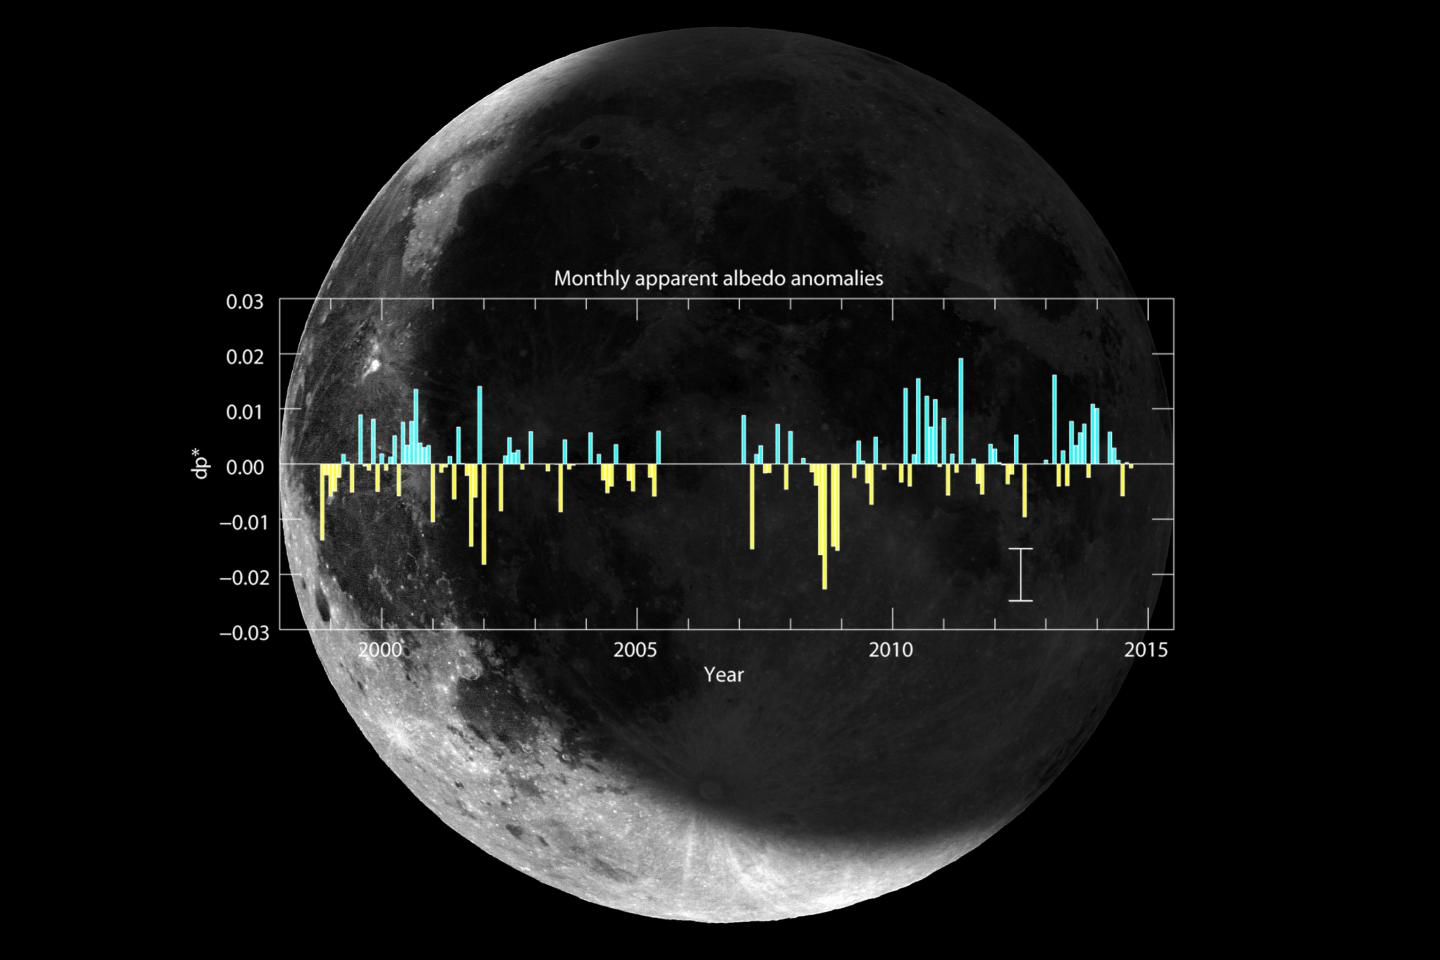 Composition of the earthshine, the light reflected from the Earth to the night-time face of the Moon, and the figure showing the monthly mean apparent albedo anomalies from December 1998 through December 2014. Anomalies were calculated over the mean of the full period, positive anomalies are shown in red and negative in blue. Averaged standard deviation (error) of the monthly data is also indicated in the lower right corner for simplicity. Only months with at least 5 nights of observations are shown. From November 2005 to August 2006 several months of earthshine data are missing due to the replacement of the dome of the solar telescope, while the new automated telescope under a separate dome was not yet operational. CREDIT Daniel López/IAC.